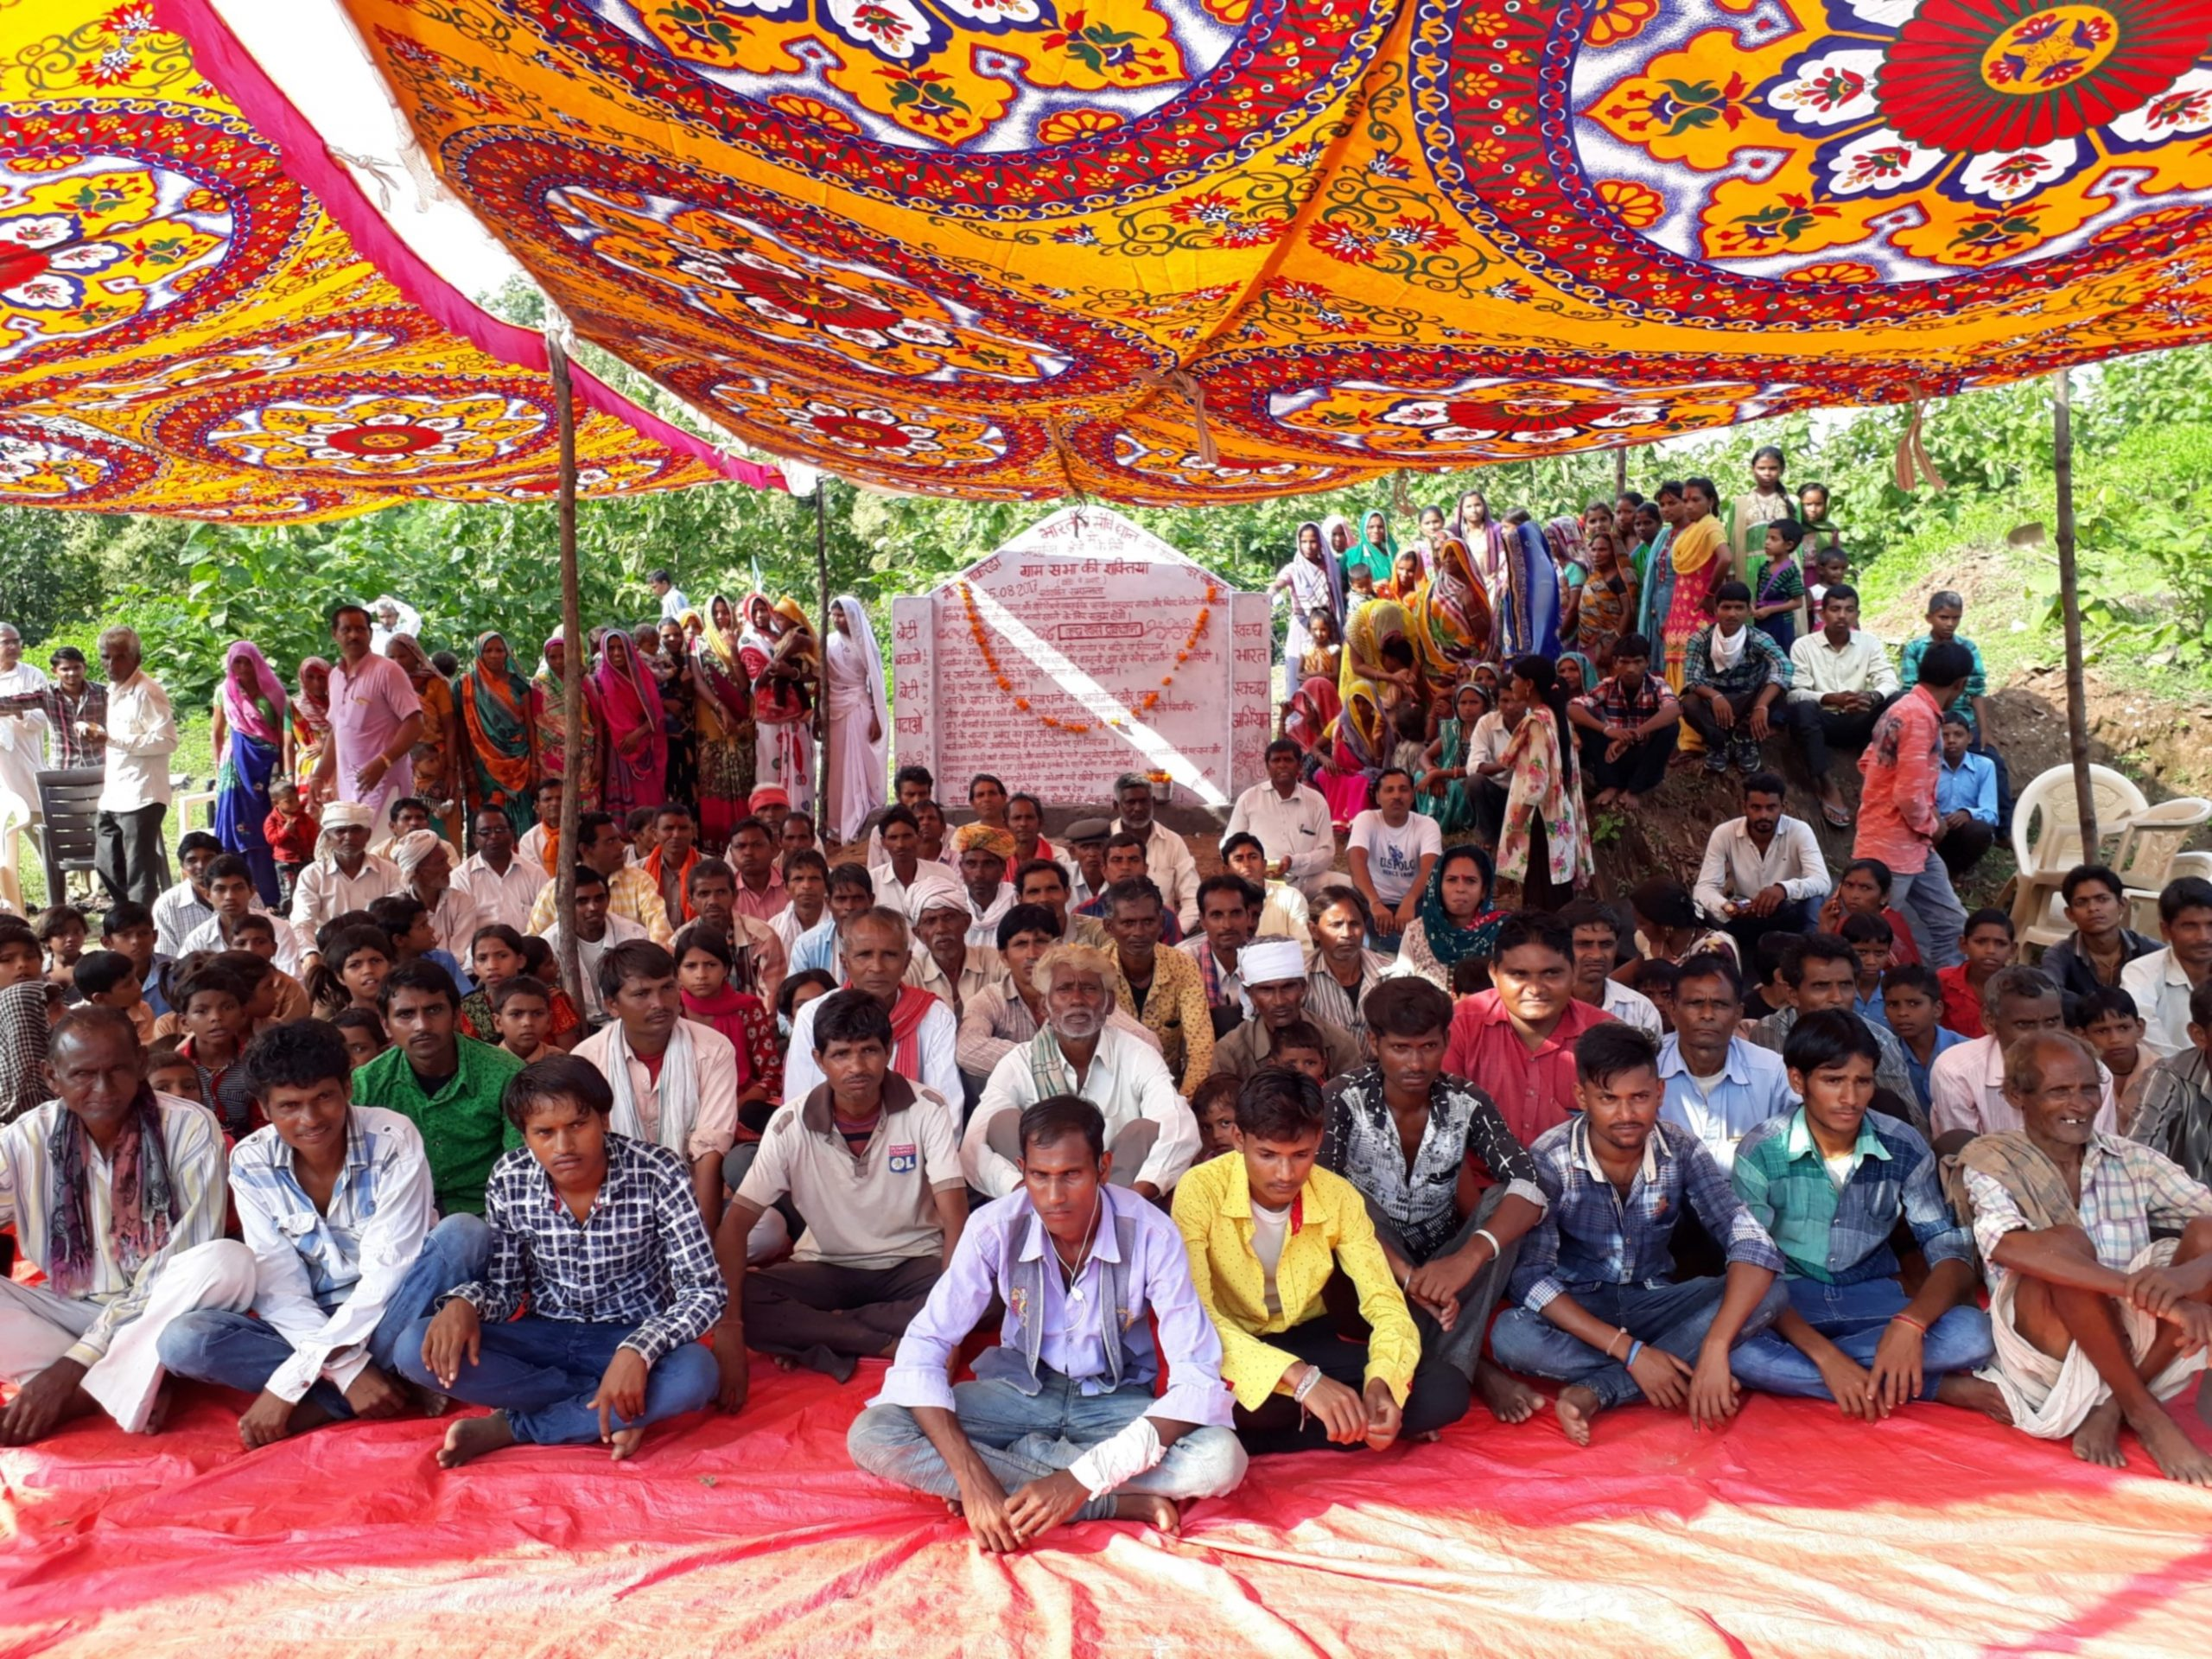 Several villagers sitting under a shade